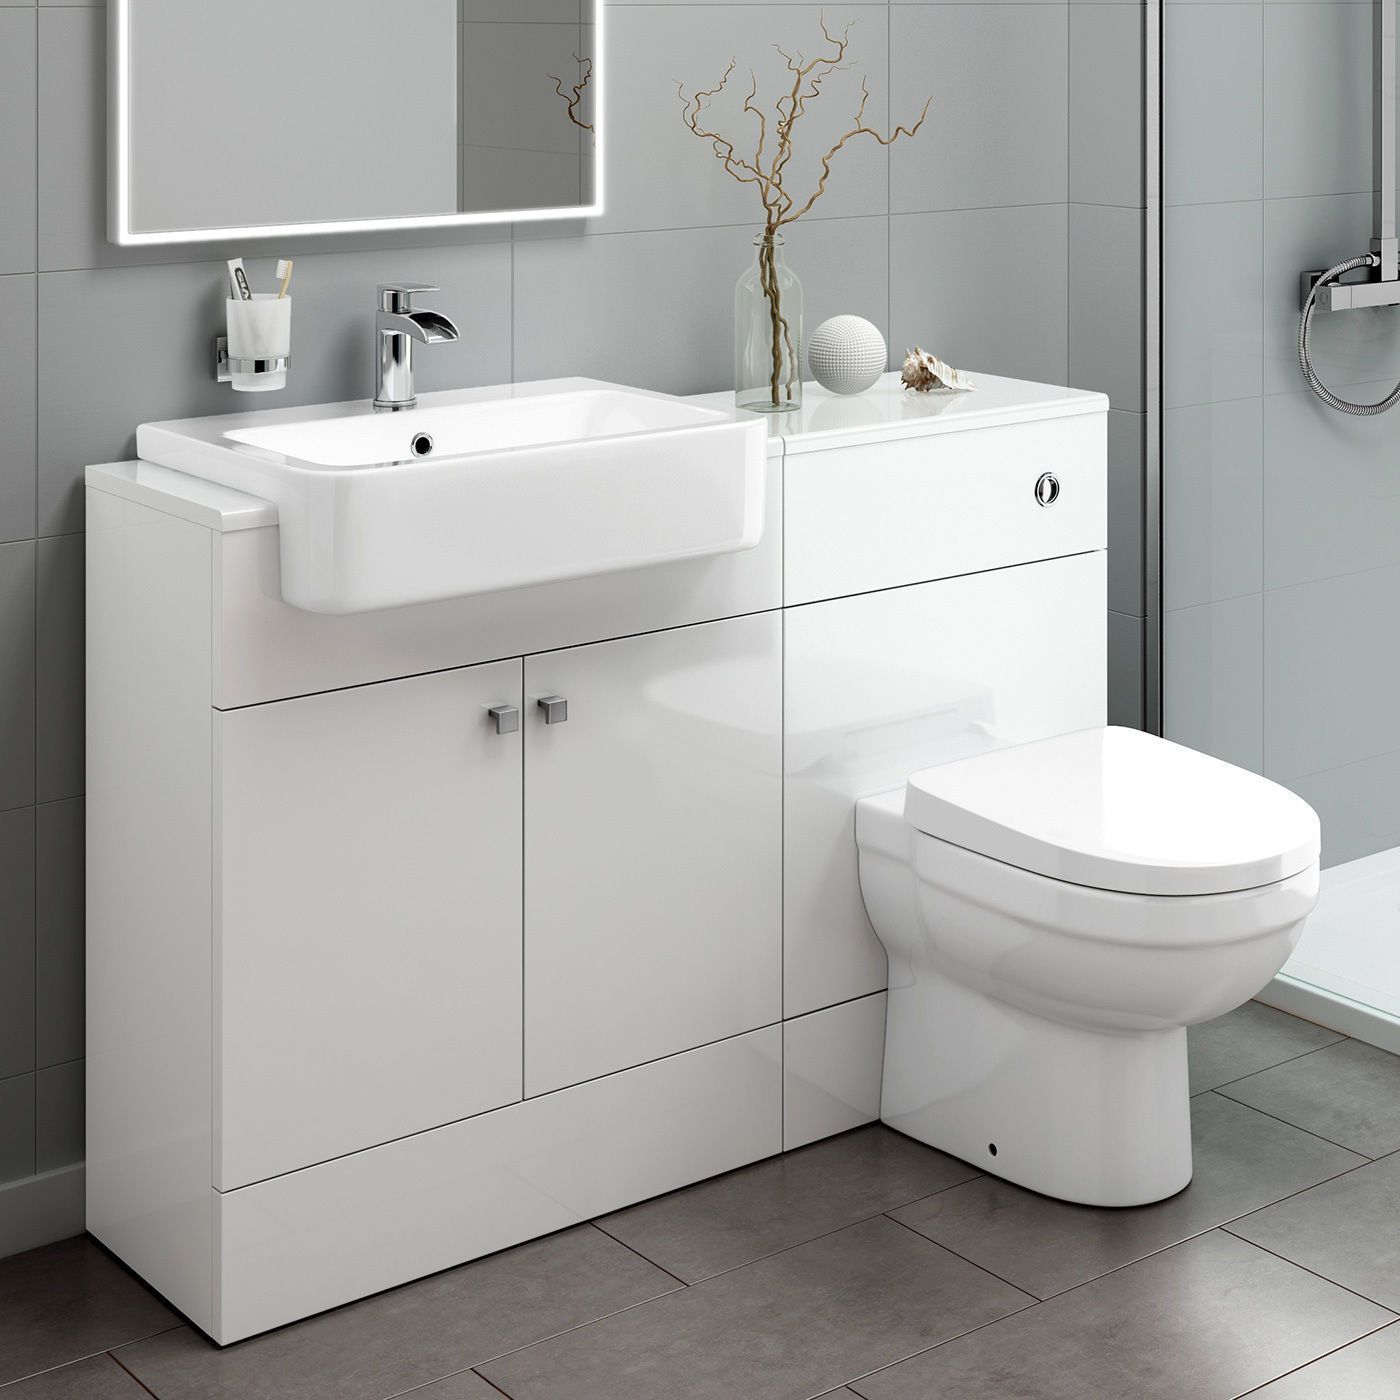 This Toilet And Sink Vanity Storage Unit Features A Built In